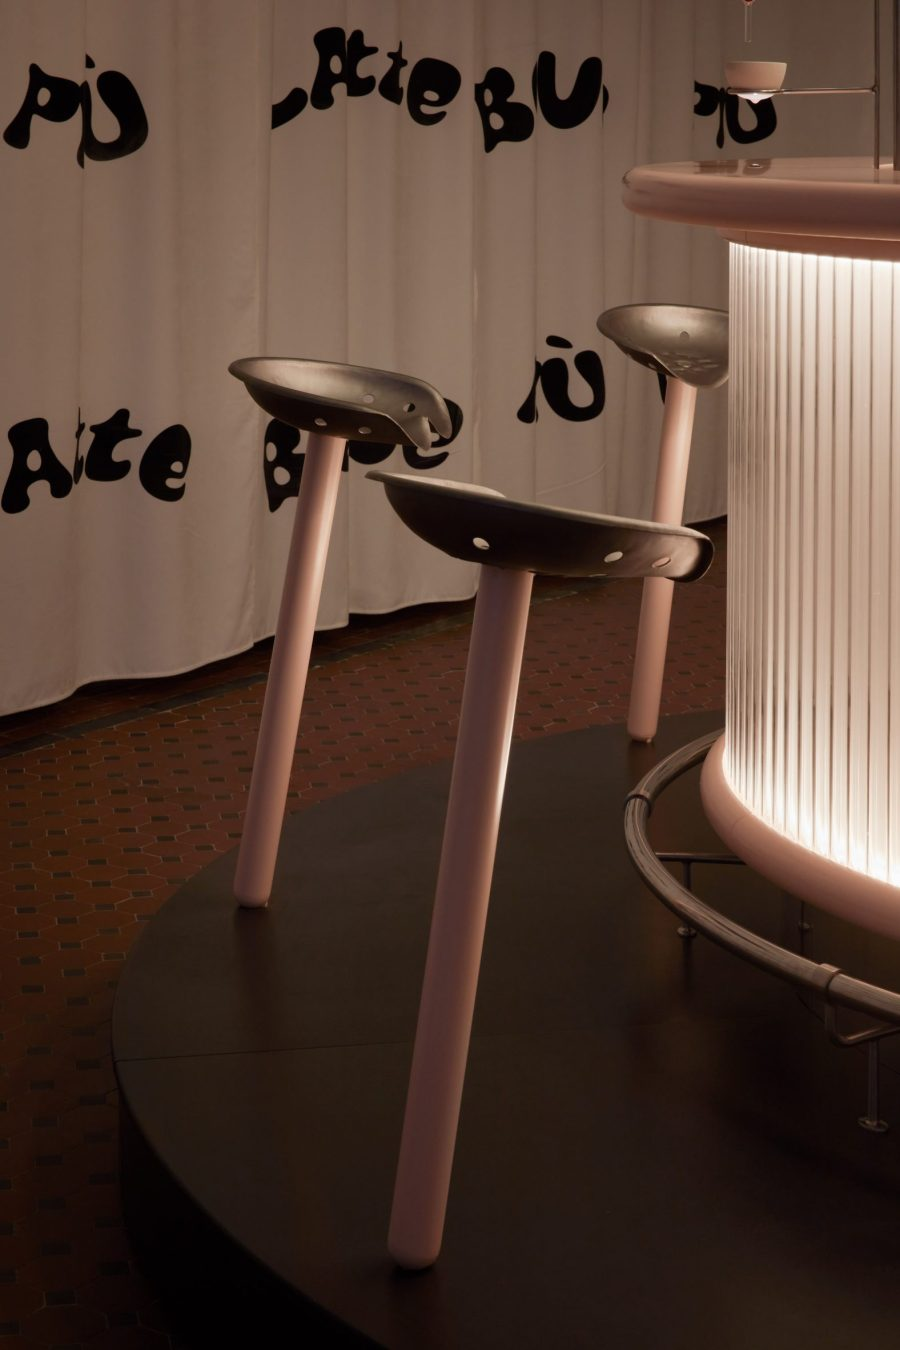 Stools with pink stems and metal tractor seats in installation by Lolita Gomez and Blanca Algarra Sanchez